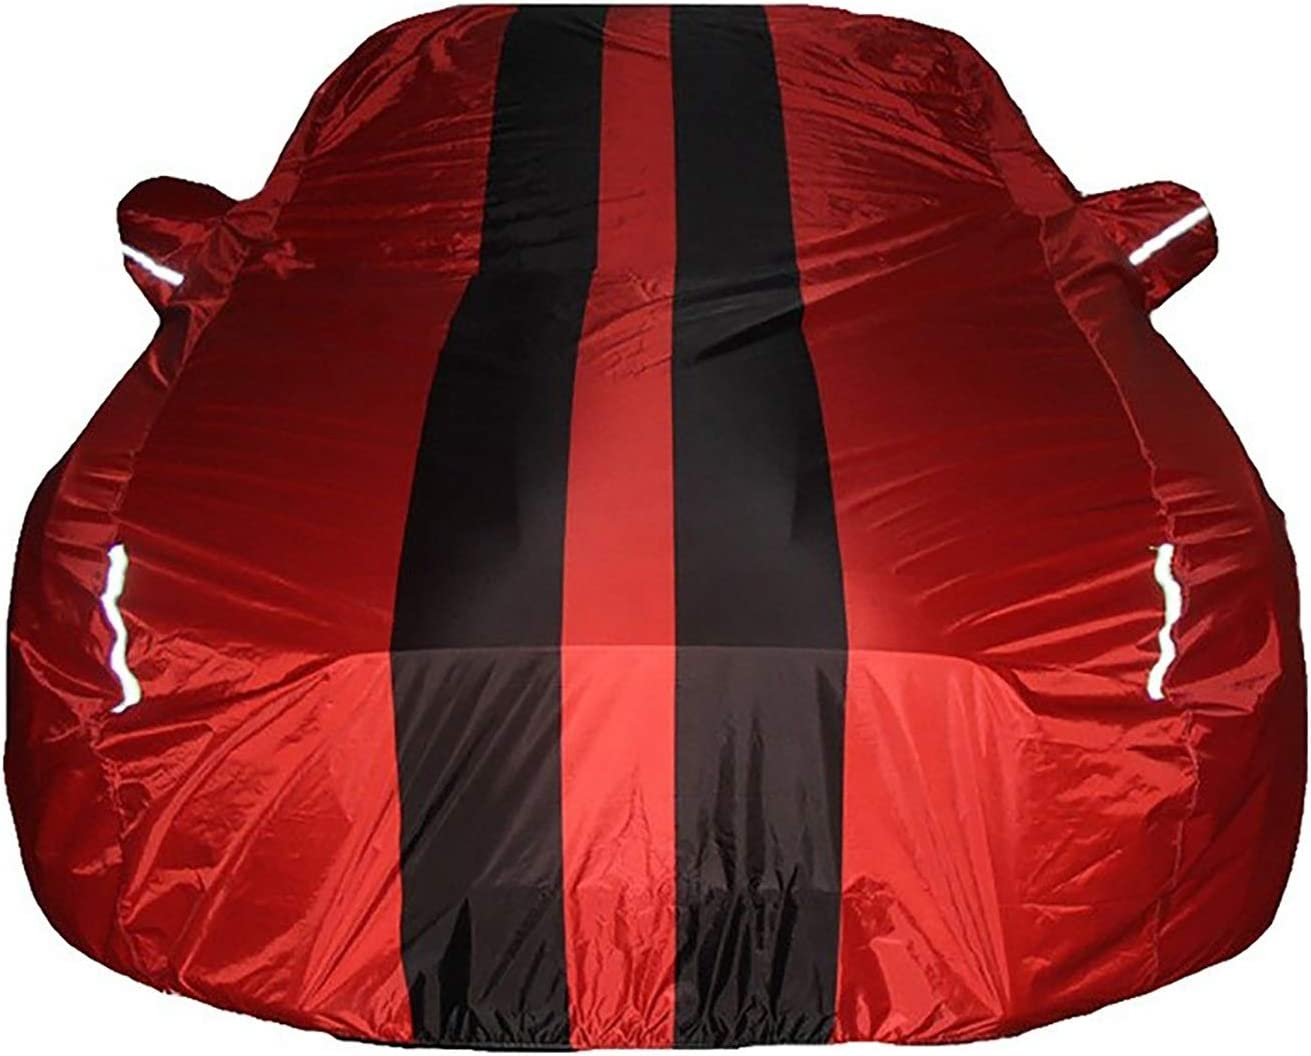 CARCOVERCJH Car Cover Hatchback Convertible Luxury Co Year-end gift Sedan